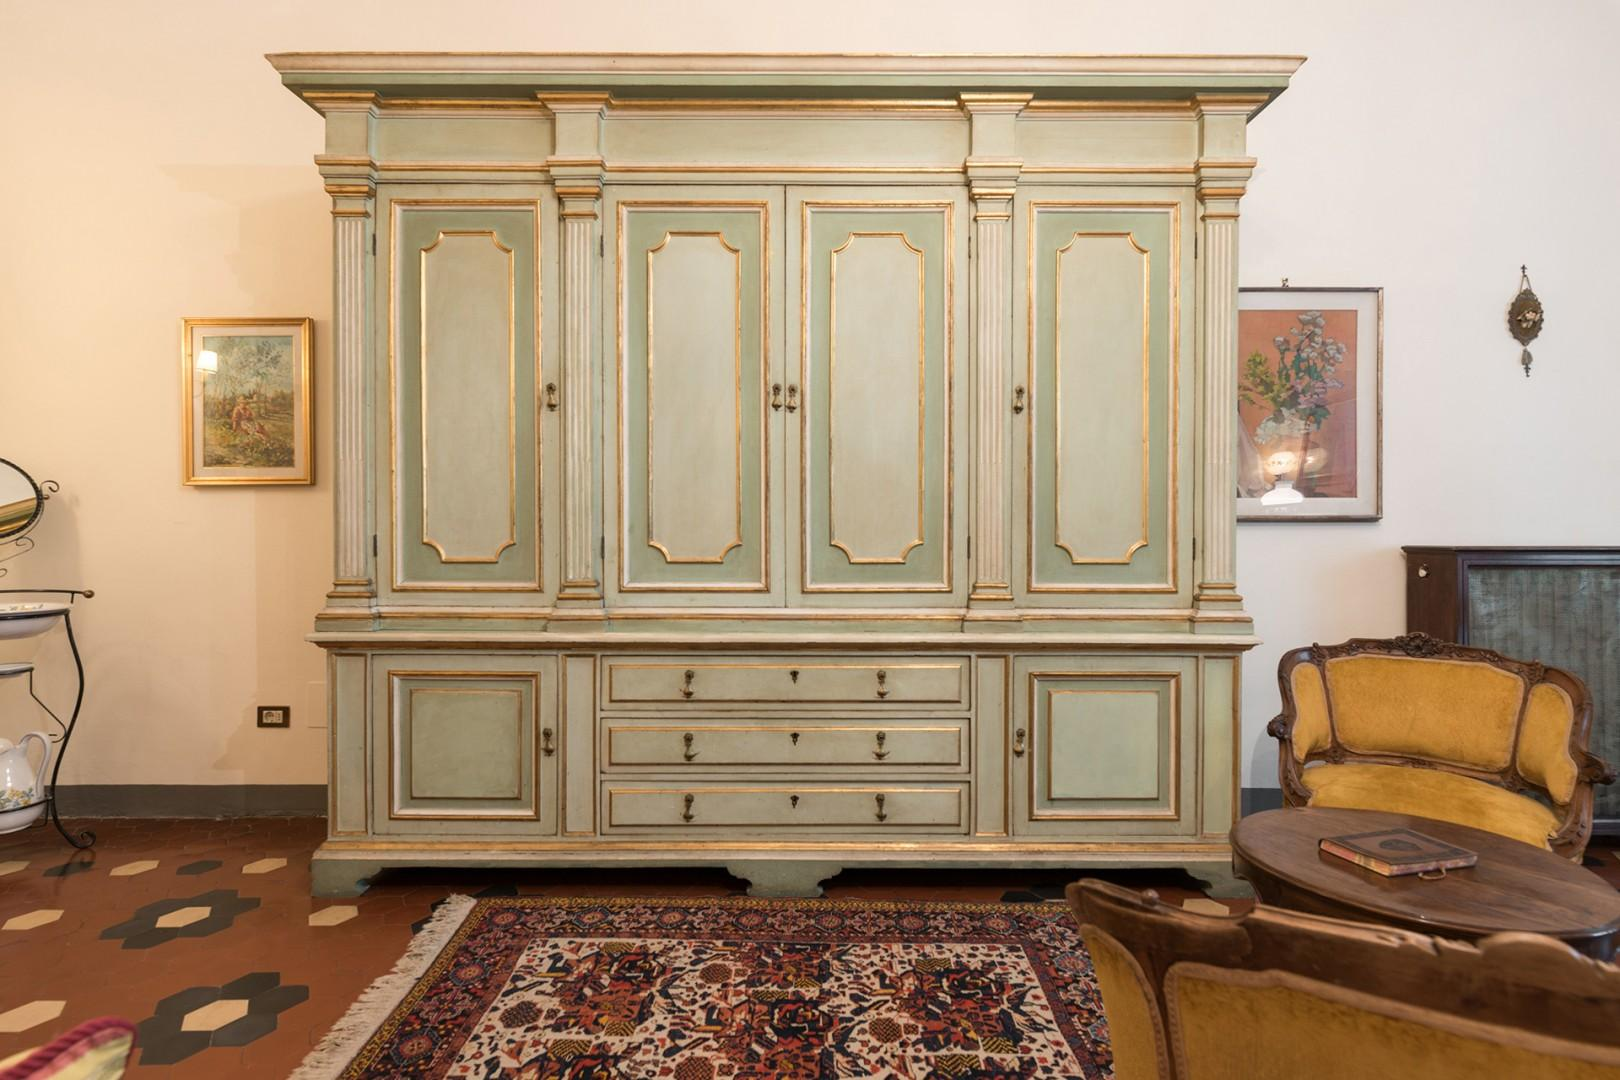 A pretty hand-painted armorie and an antique dresser provide ample clothing storage space.